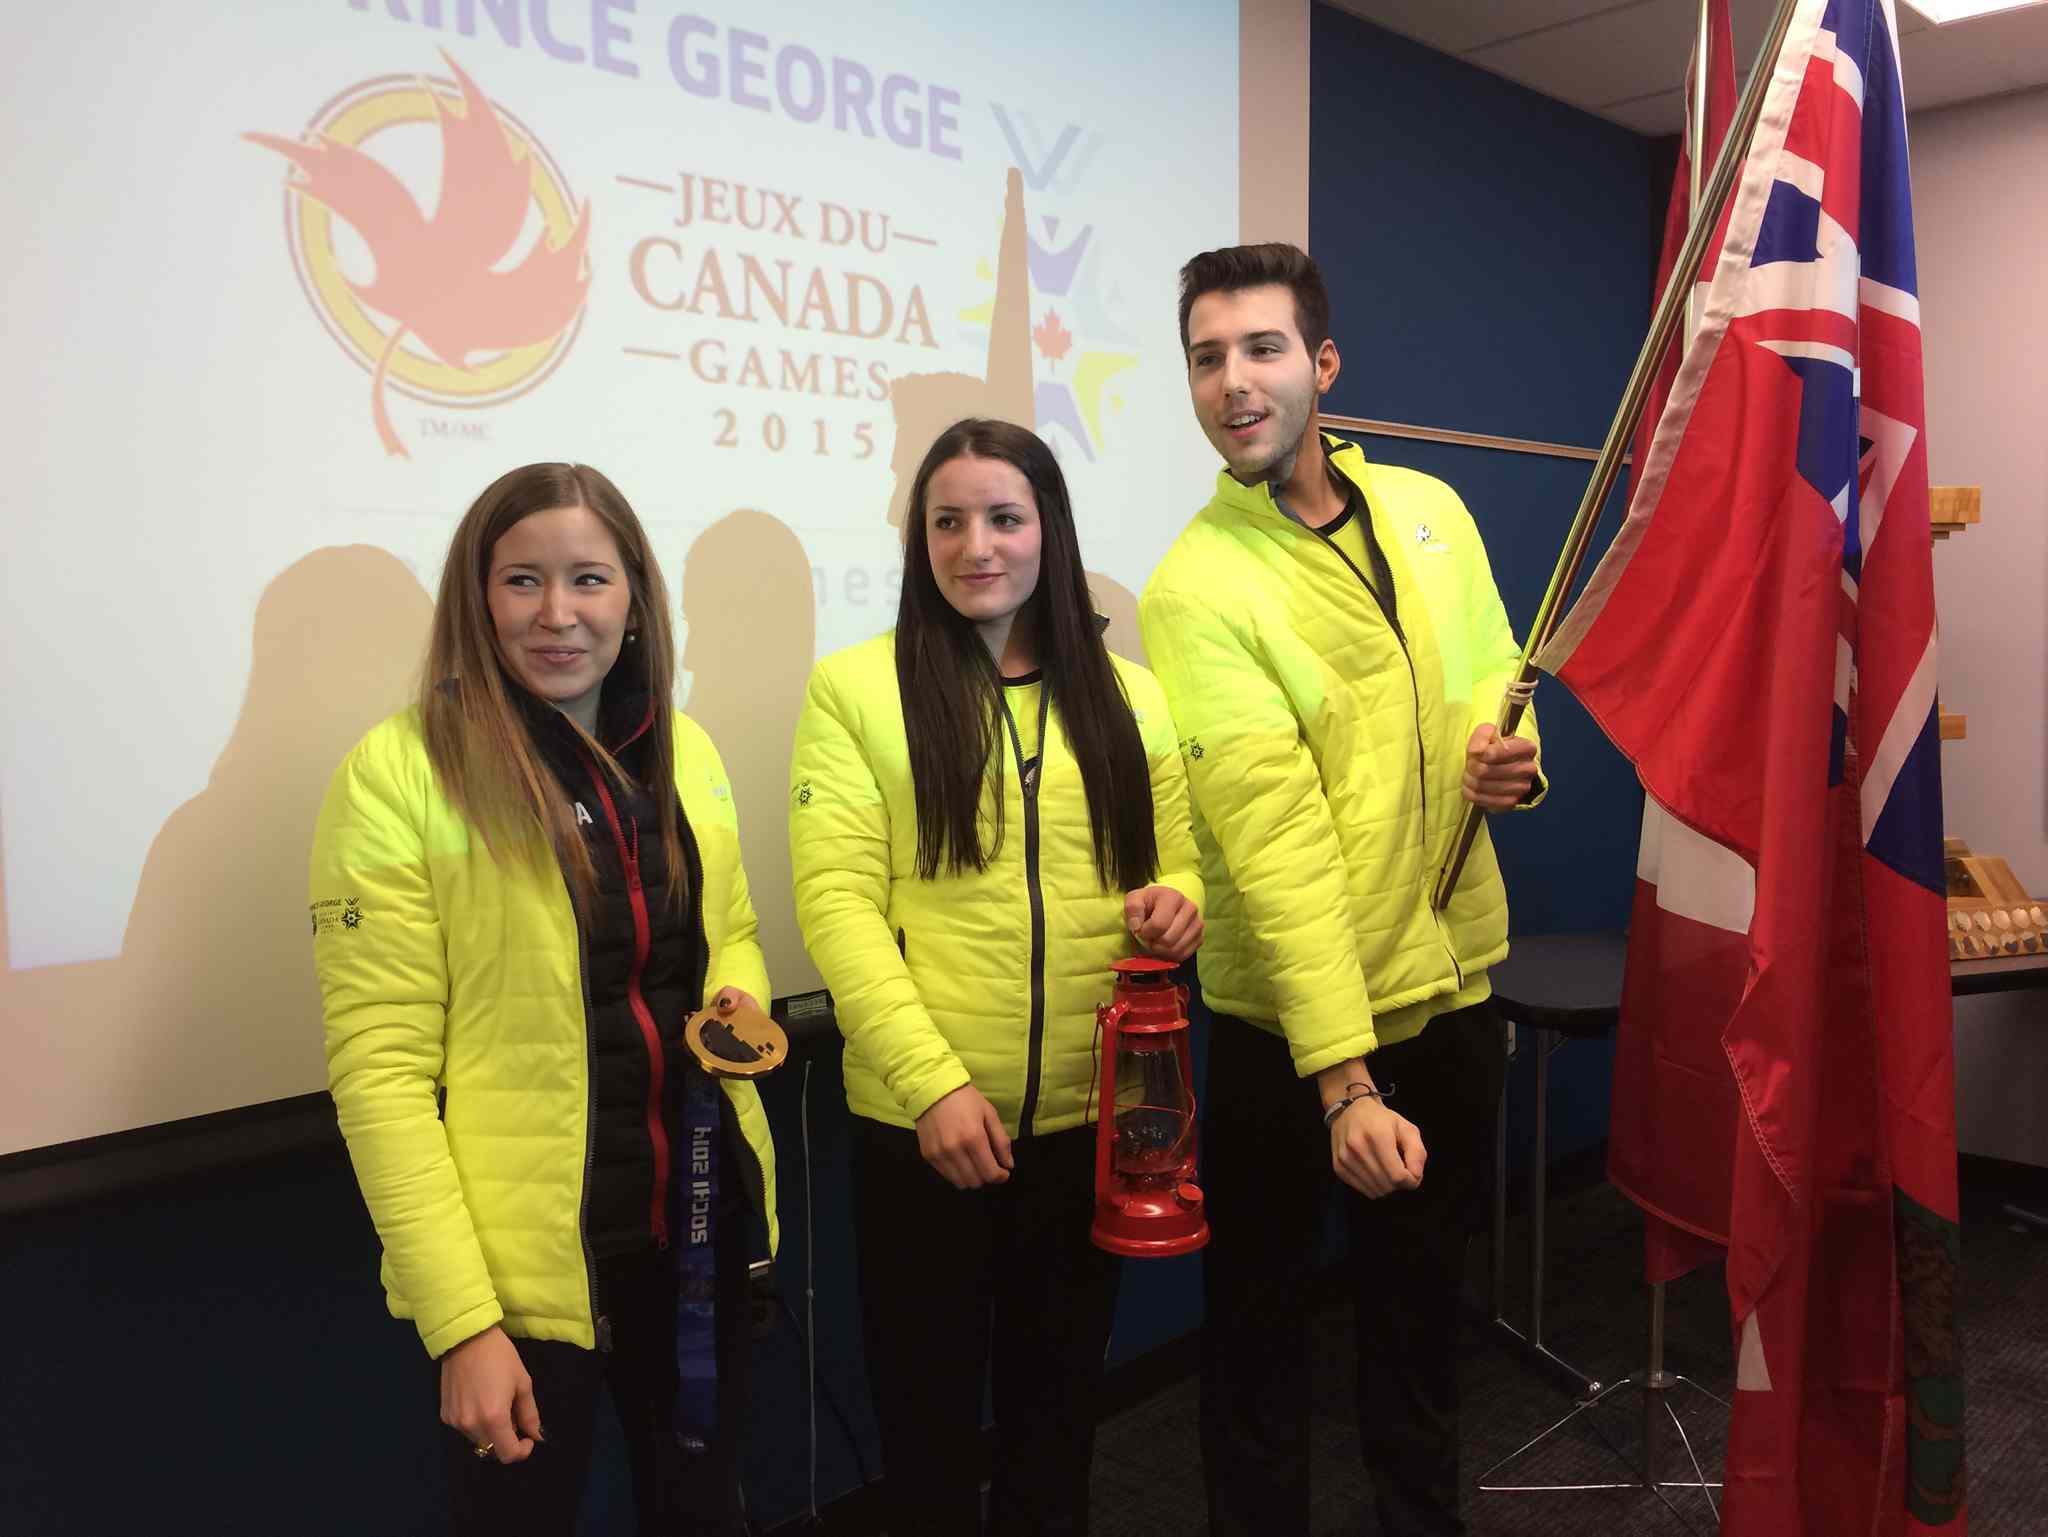 Archery competitor Keenan Brown, seen at a press conference prior to the Canada Winter Games with hockey player Christian Higham, centre, and honorary Manitoba captain Kaitlyn Lawes, left, earned Manitoba's first medal, a gold, in Prince George, B.C.